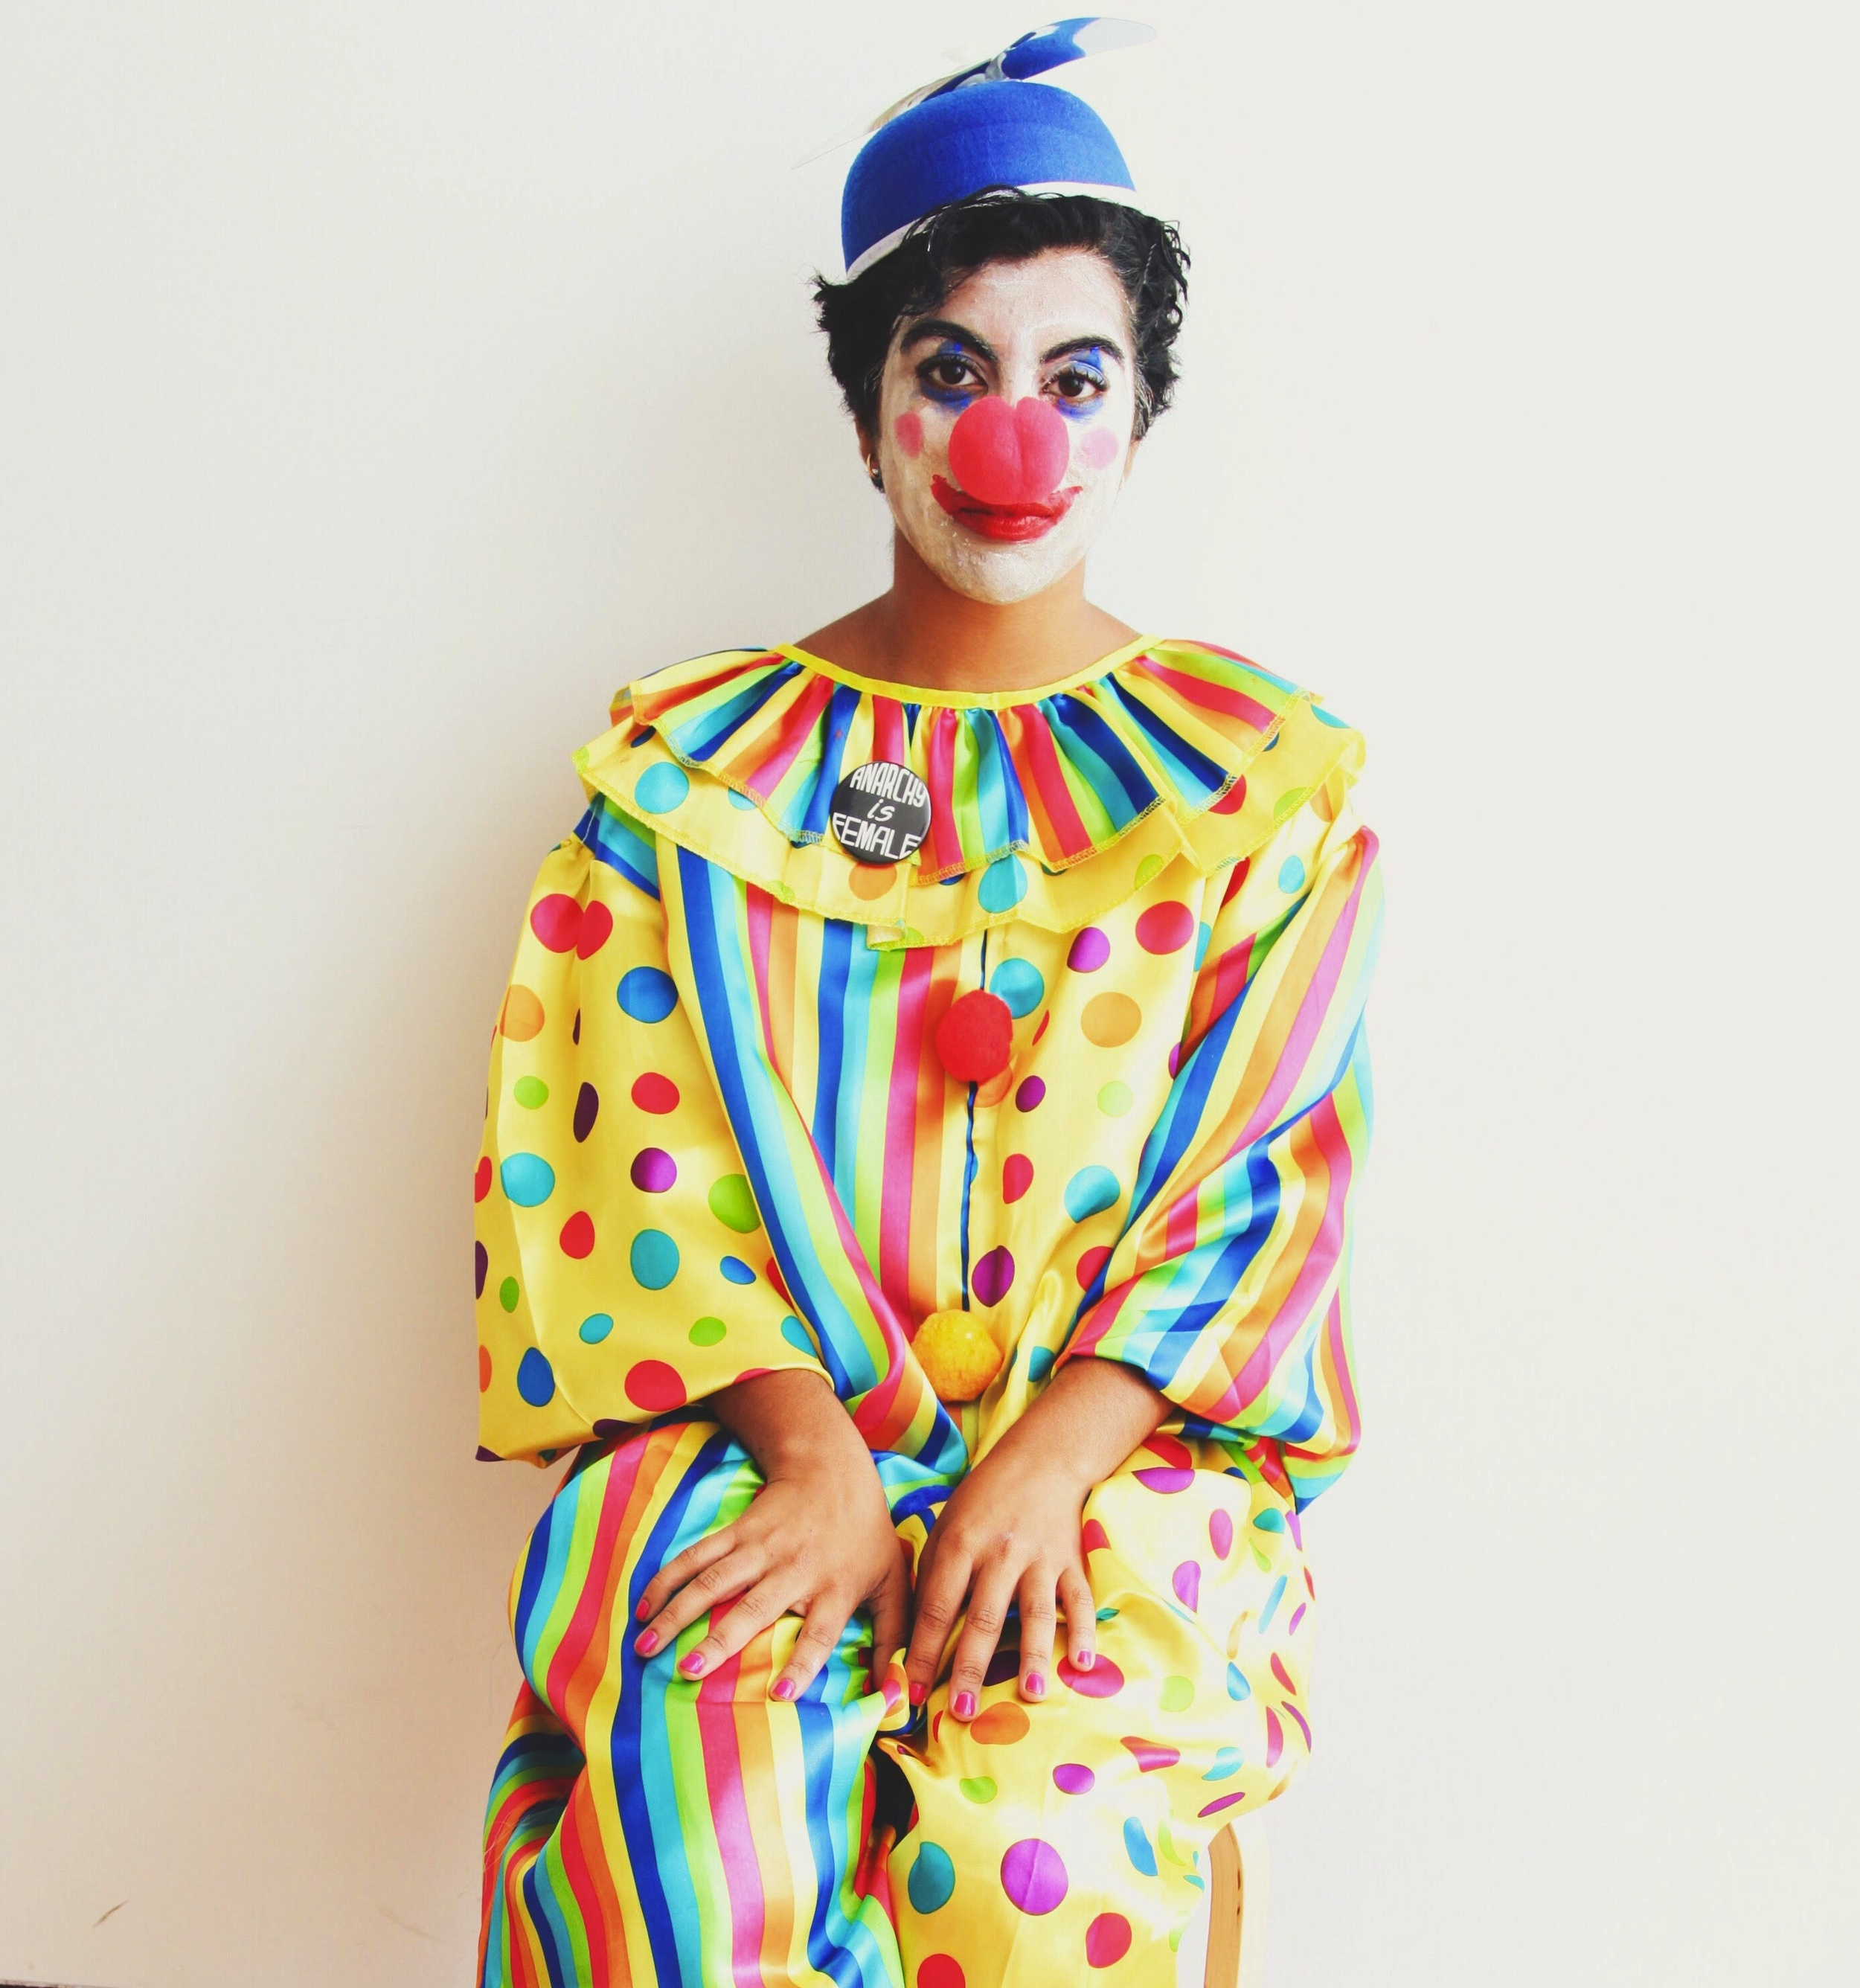 vscoclown_cropped.jpg